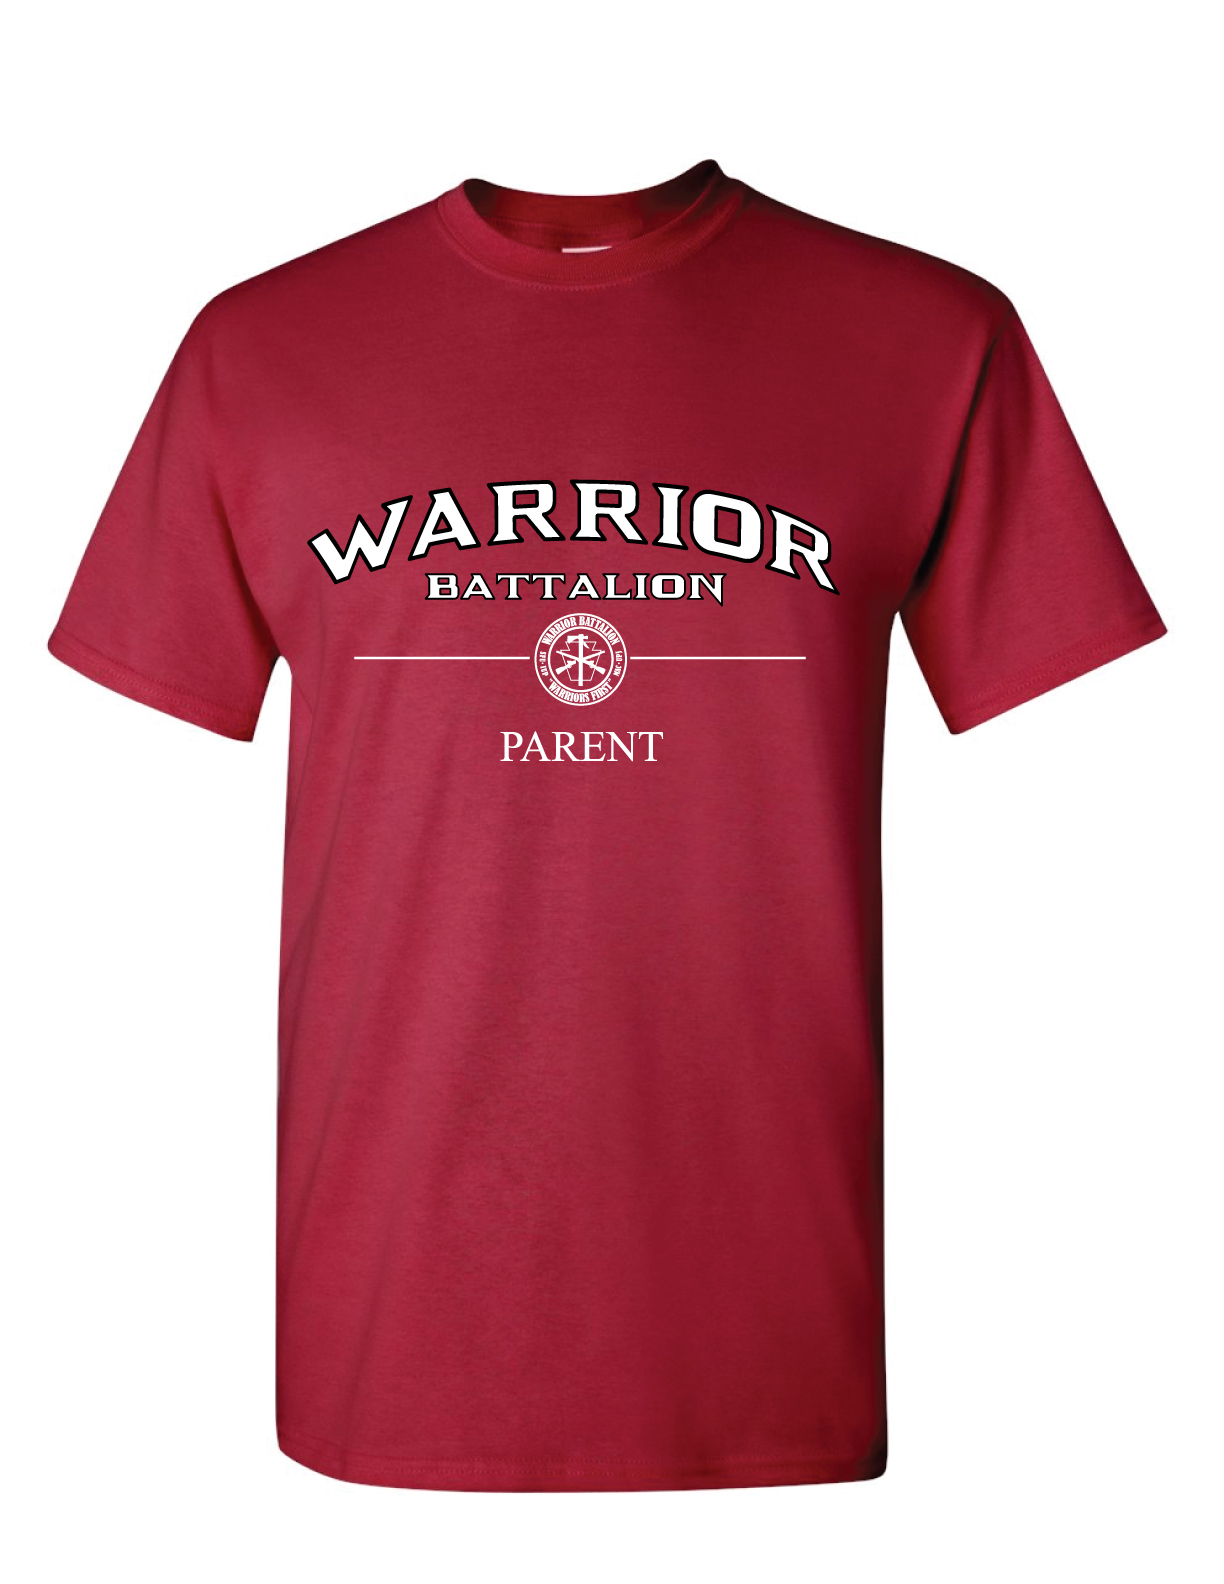 ***Clearance Sale***T-Shirt, Cardinal Red (Parent)